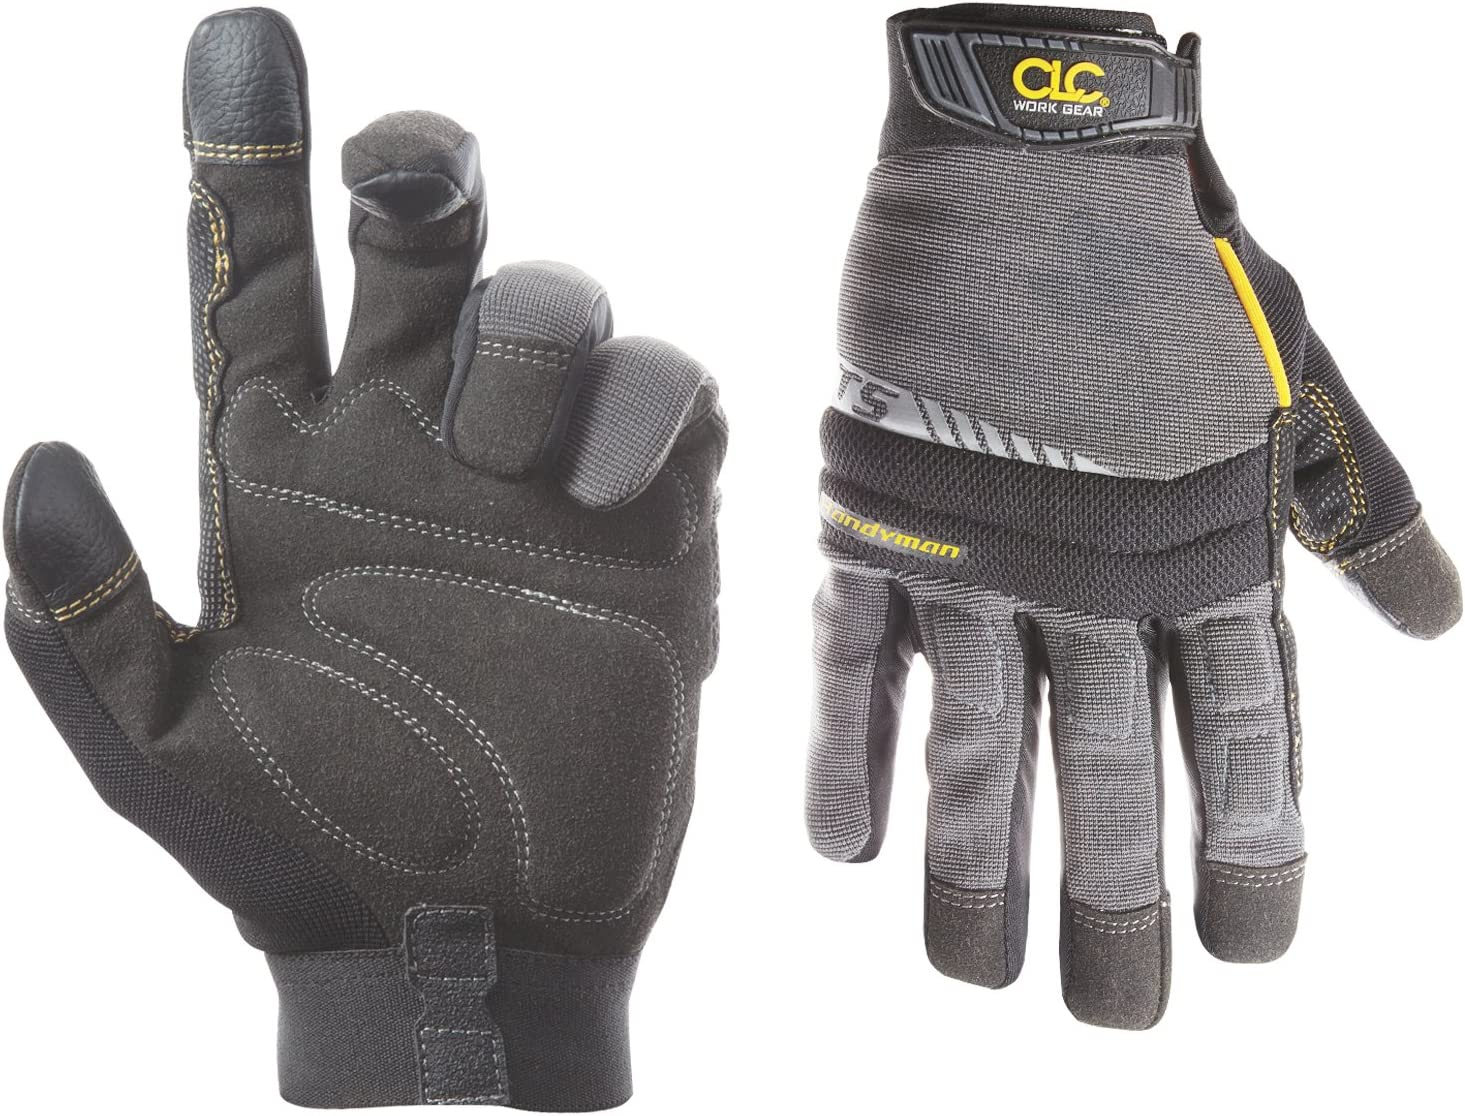 CLC Custom Leathercraft 125S Handyman Flex Grip Work Gloves, Shrink Resistant, Improved Dexterity, Tough, Stretchable, Excellent Grip